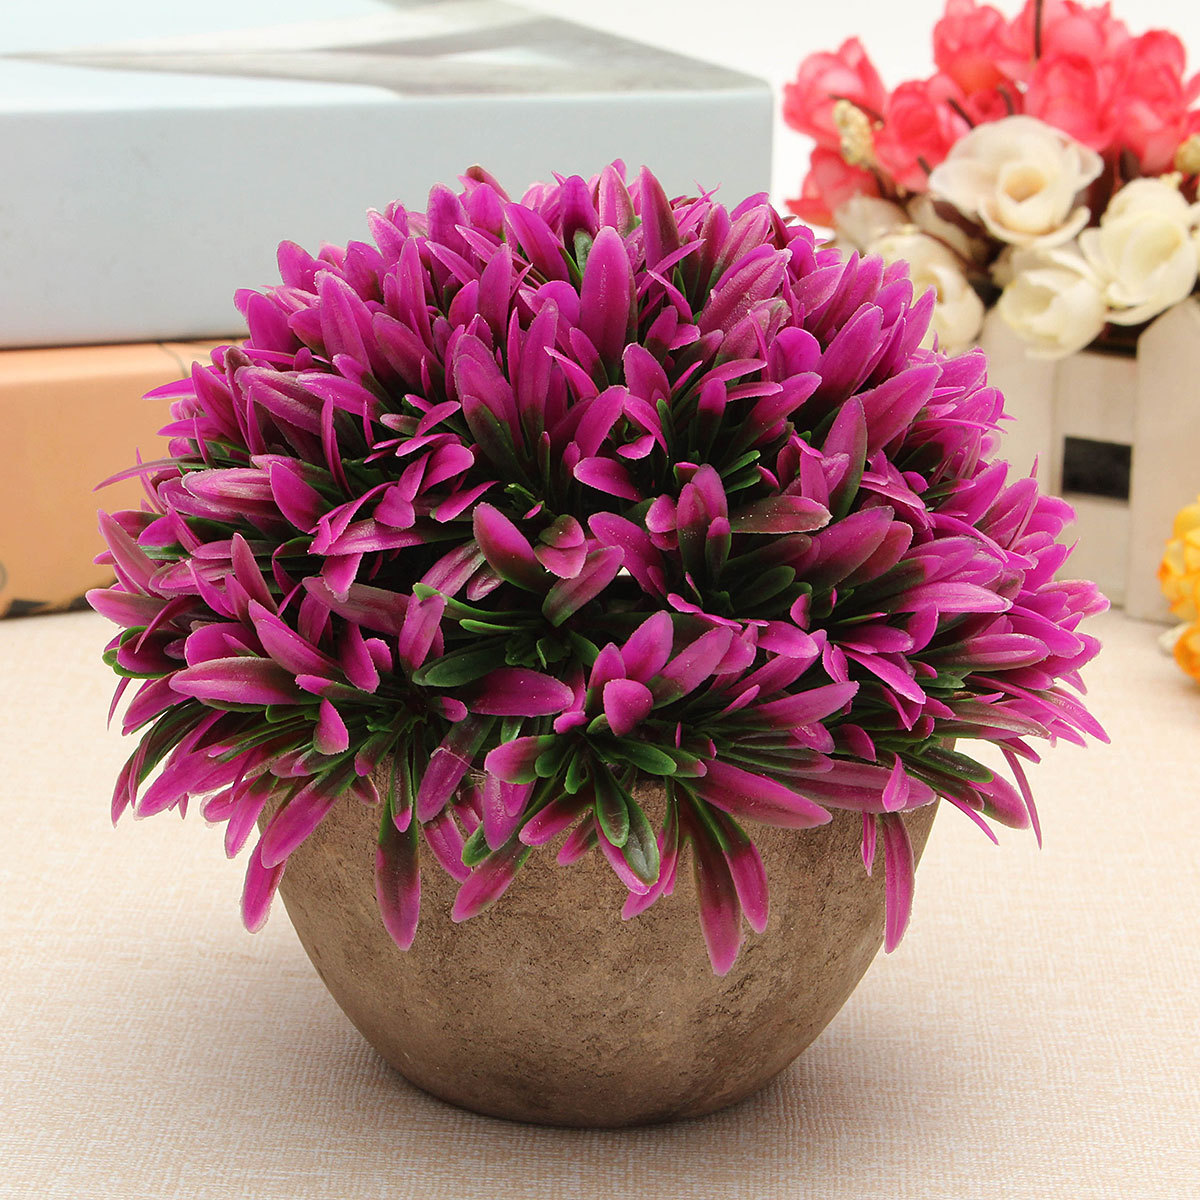 details about artificial topiary tree ball plants pot garden office artificial topiary tree ball plants pot garden